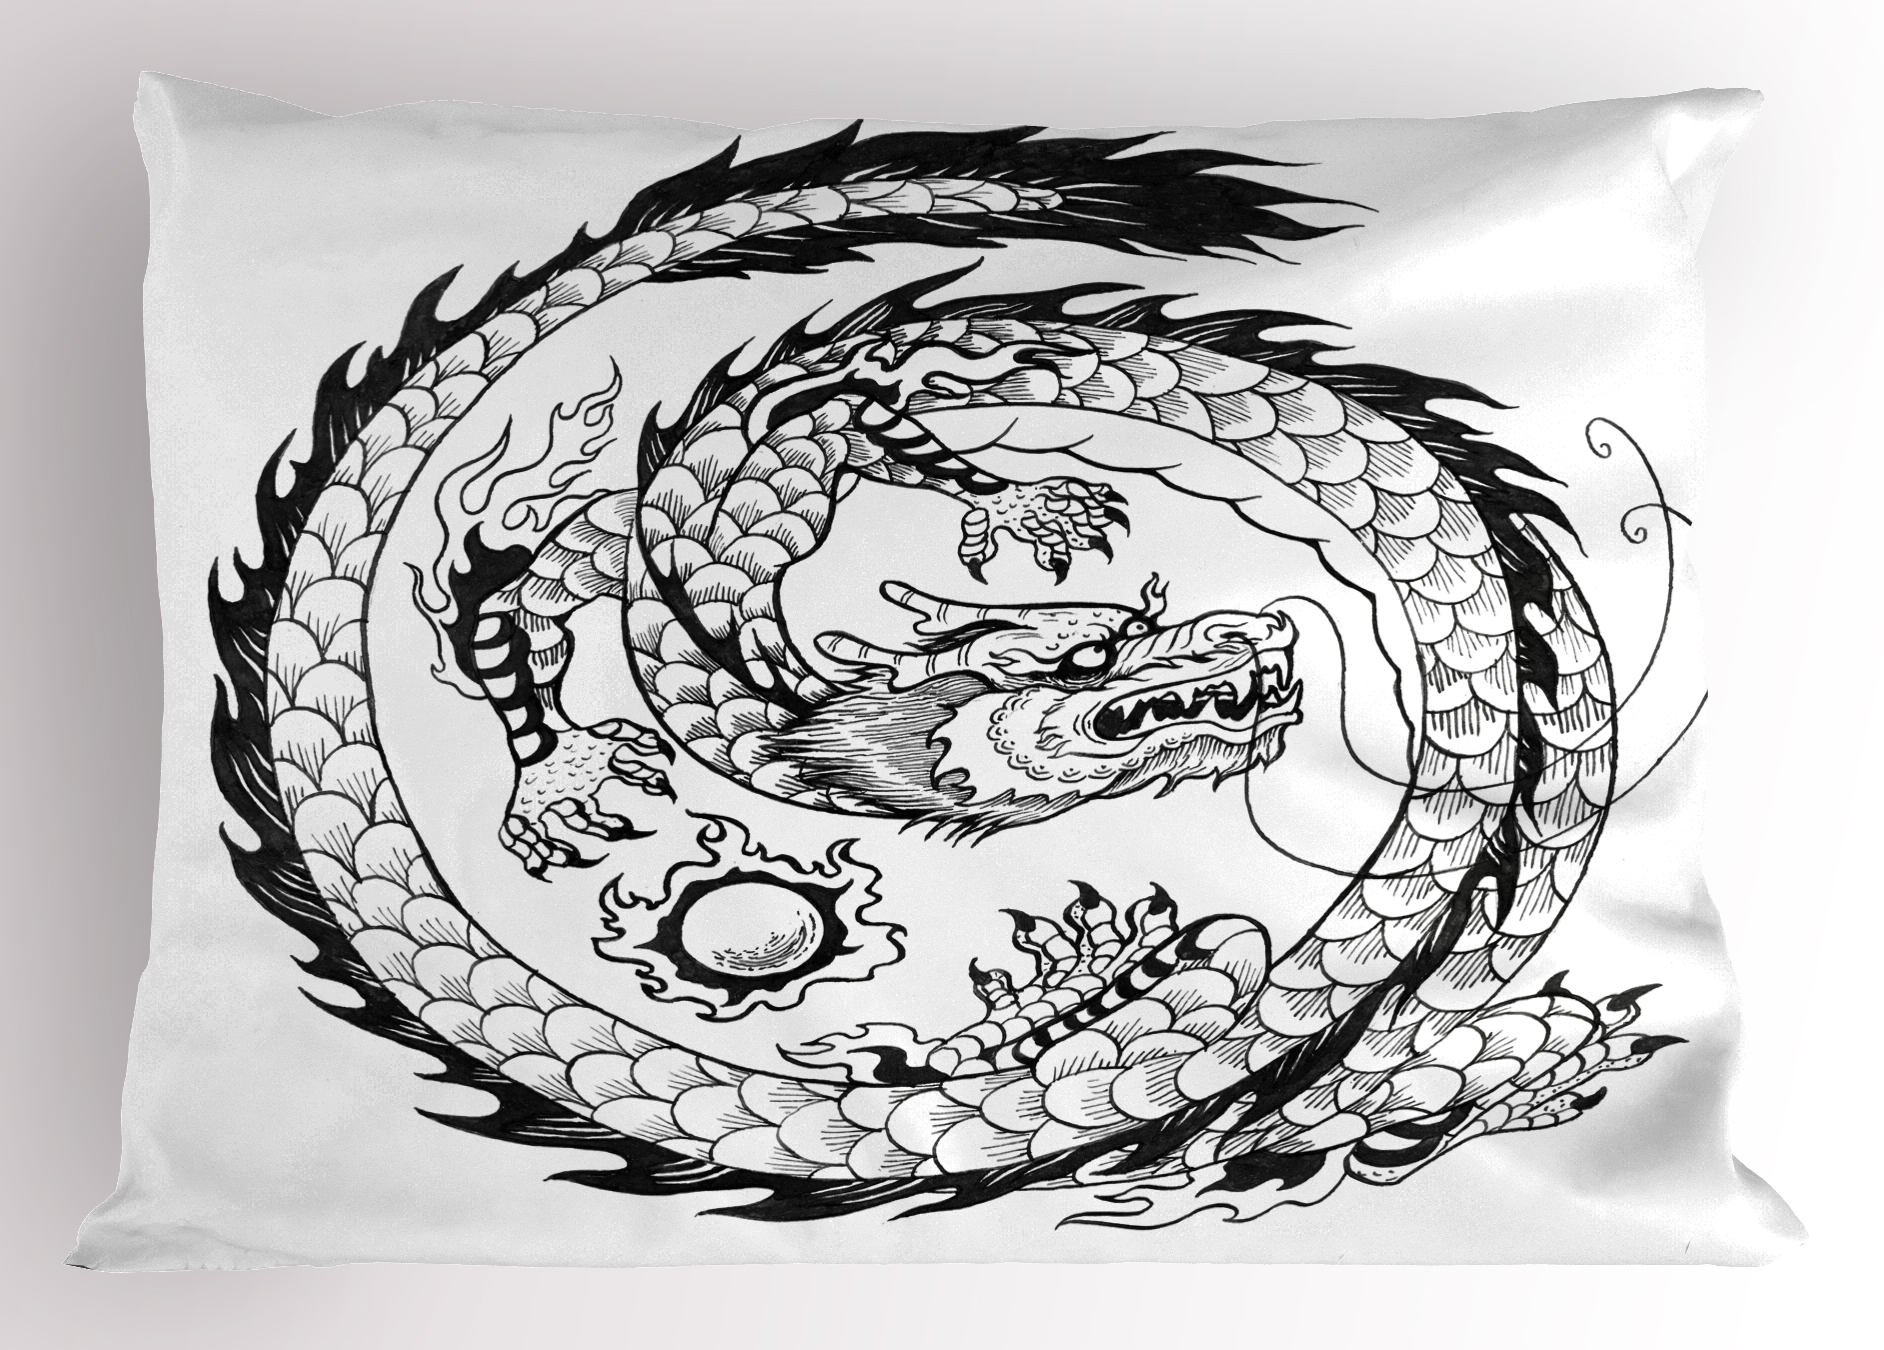 Japanese Swirled Dragon Pattern Folk Heritage Illustration Decorative 3 Piece Bedding Set with 2 Pillow Shams Ambesonne Dragon Duvet Cover Set Queen Size Black and White